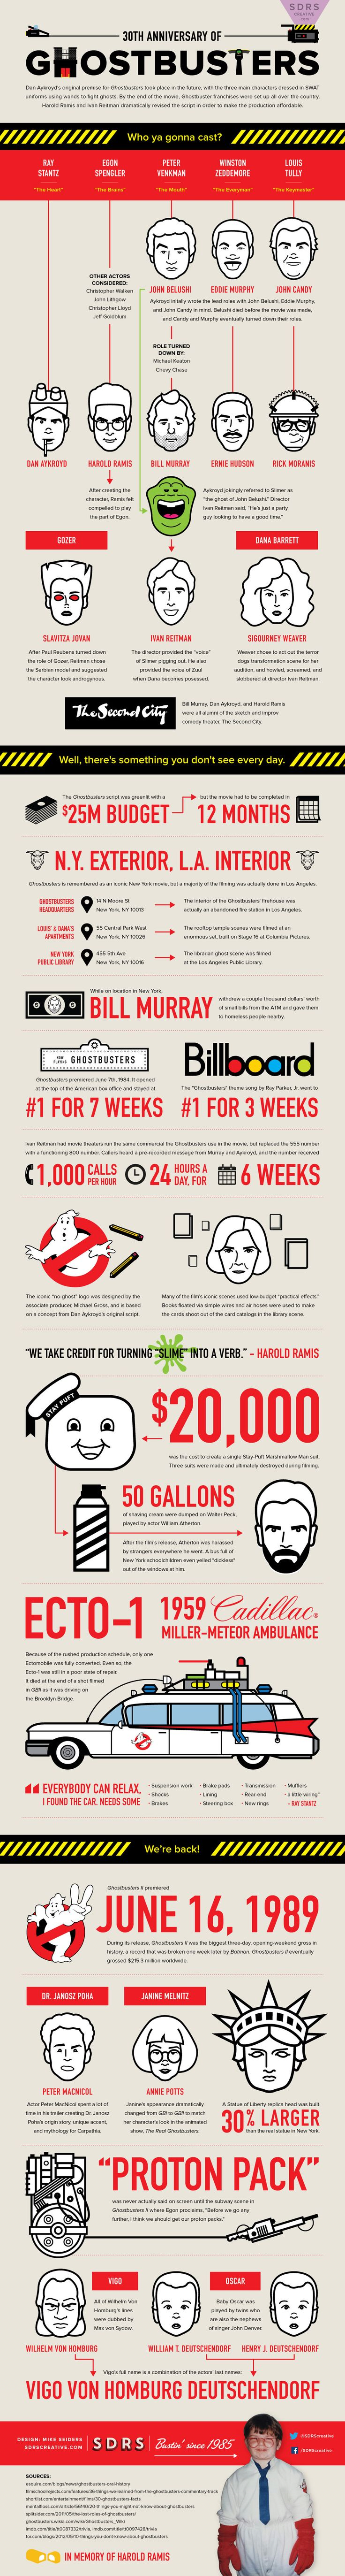 30th Anniversary of Ghostbusters   #Ghostbusters #Movies | #Infographic repinned by @Piktochart | Create yours at www.piktochart.com